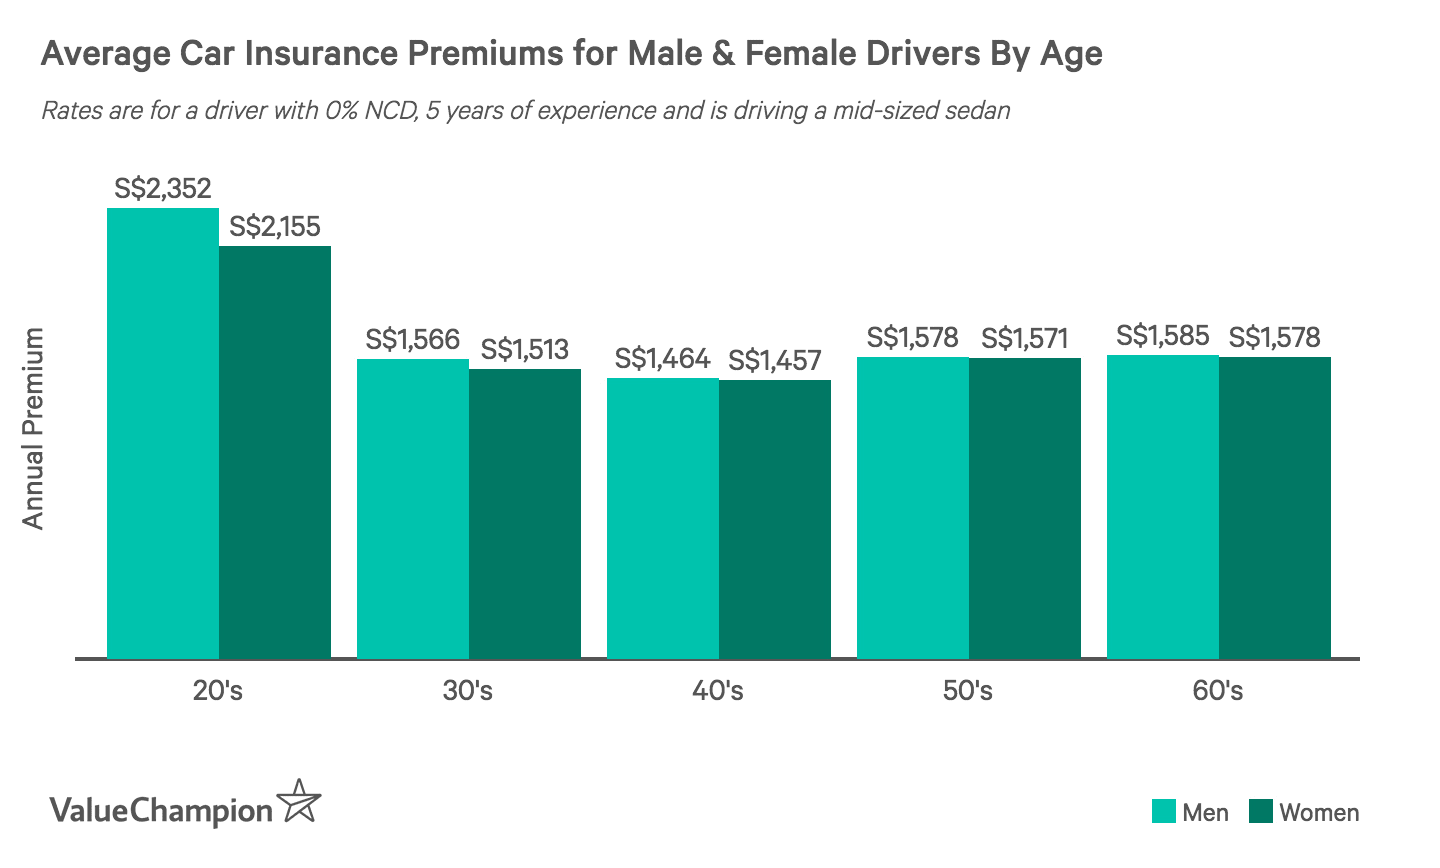 This graph shows the difference in car insurance premiums between men and women drivers in Singapore